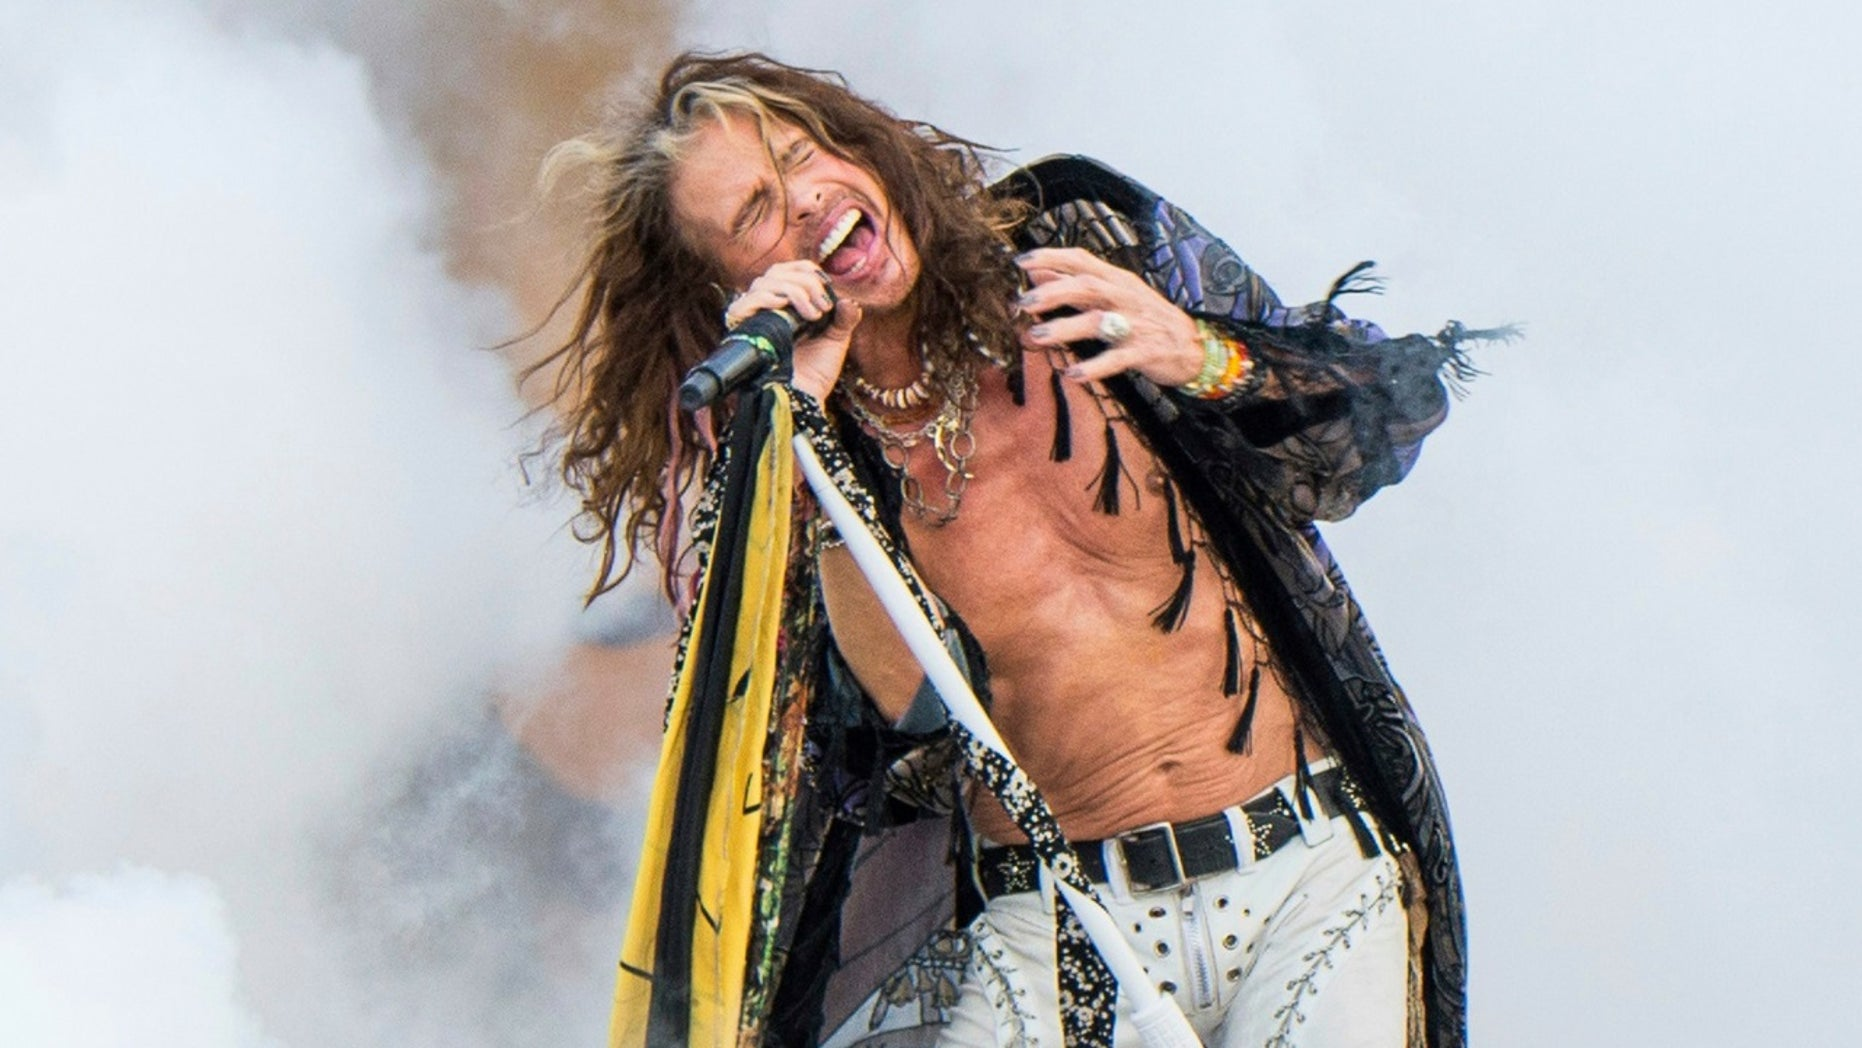 Steven Tyler's lawyer has sent a cease-and-desist letter to the White House asking the president not to use the band's songs at his rallies.